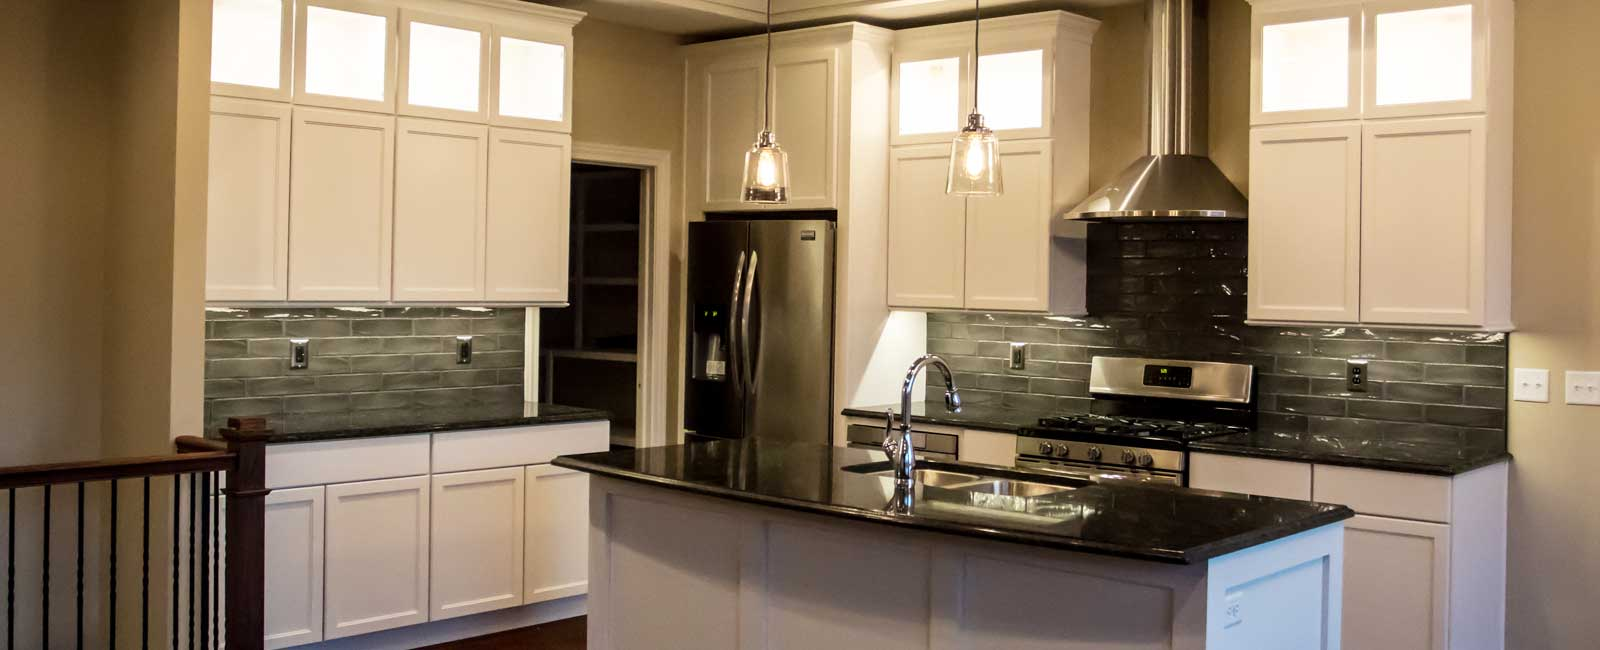 Residential Kitchen Electrical